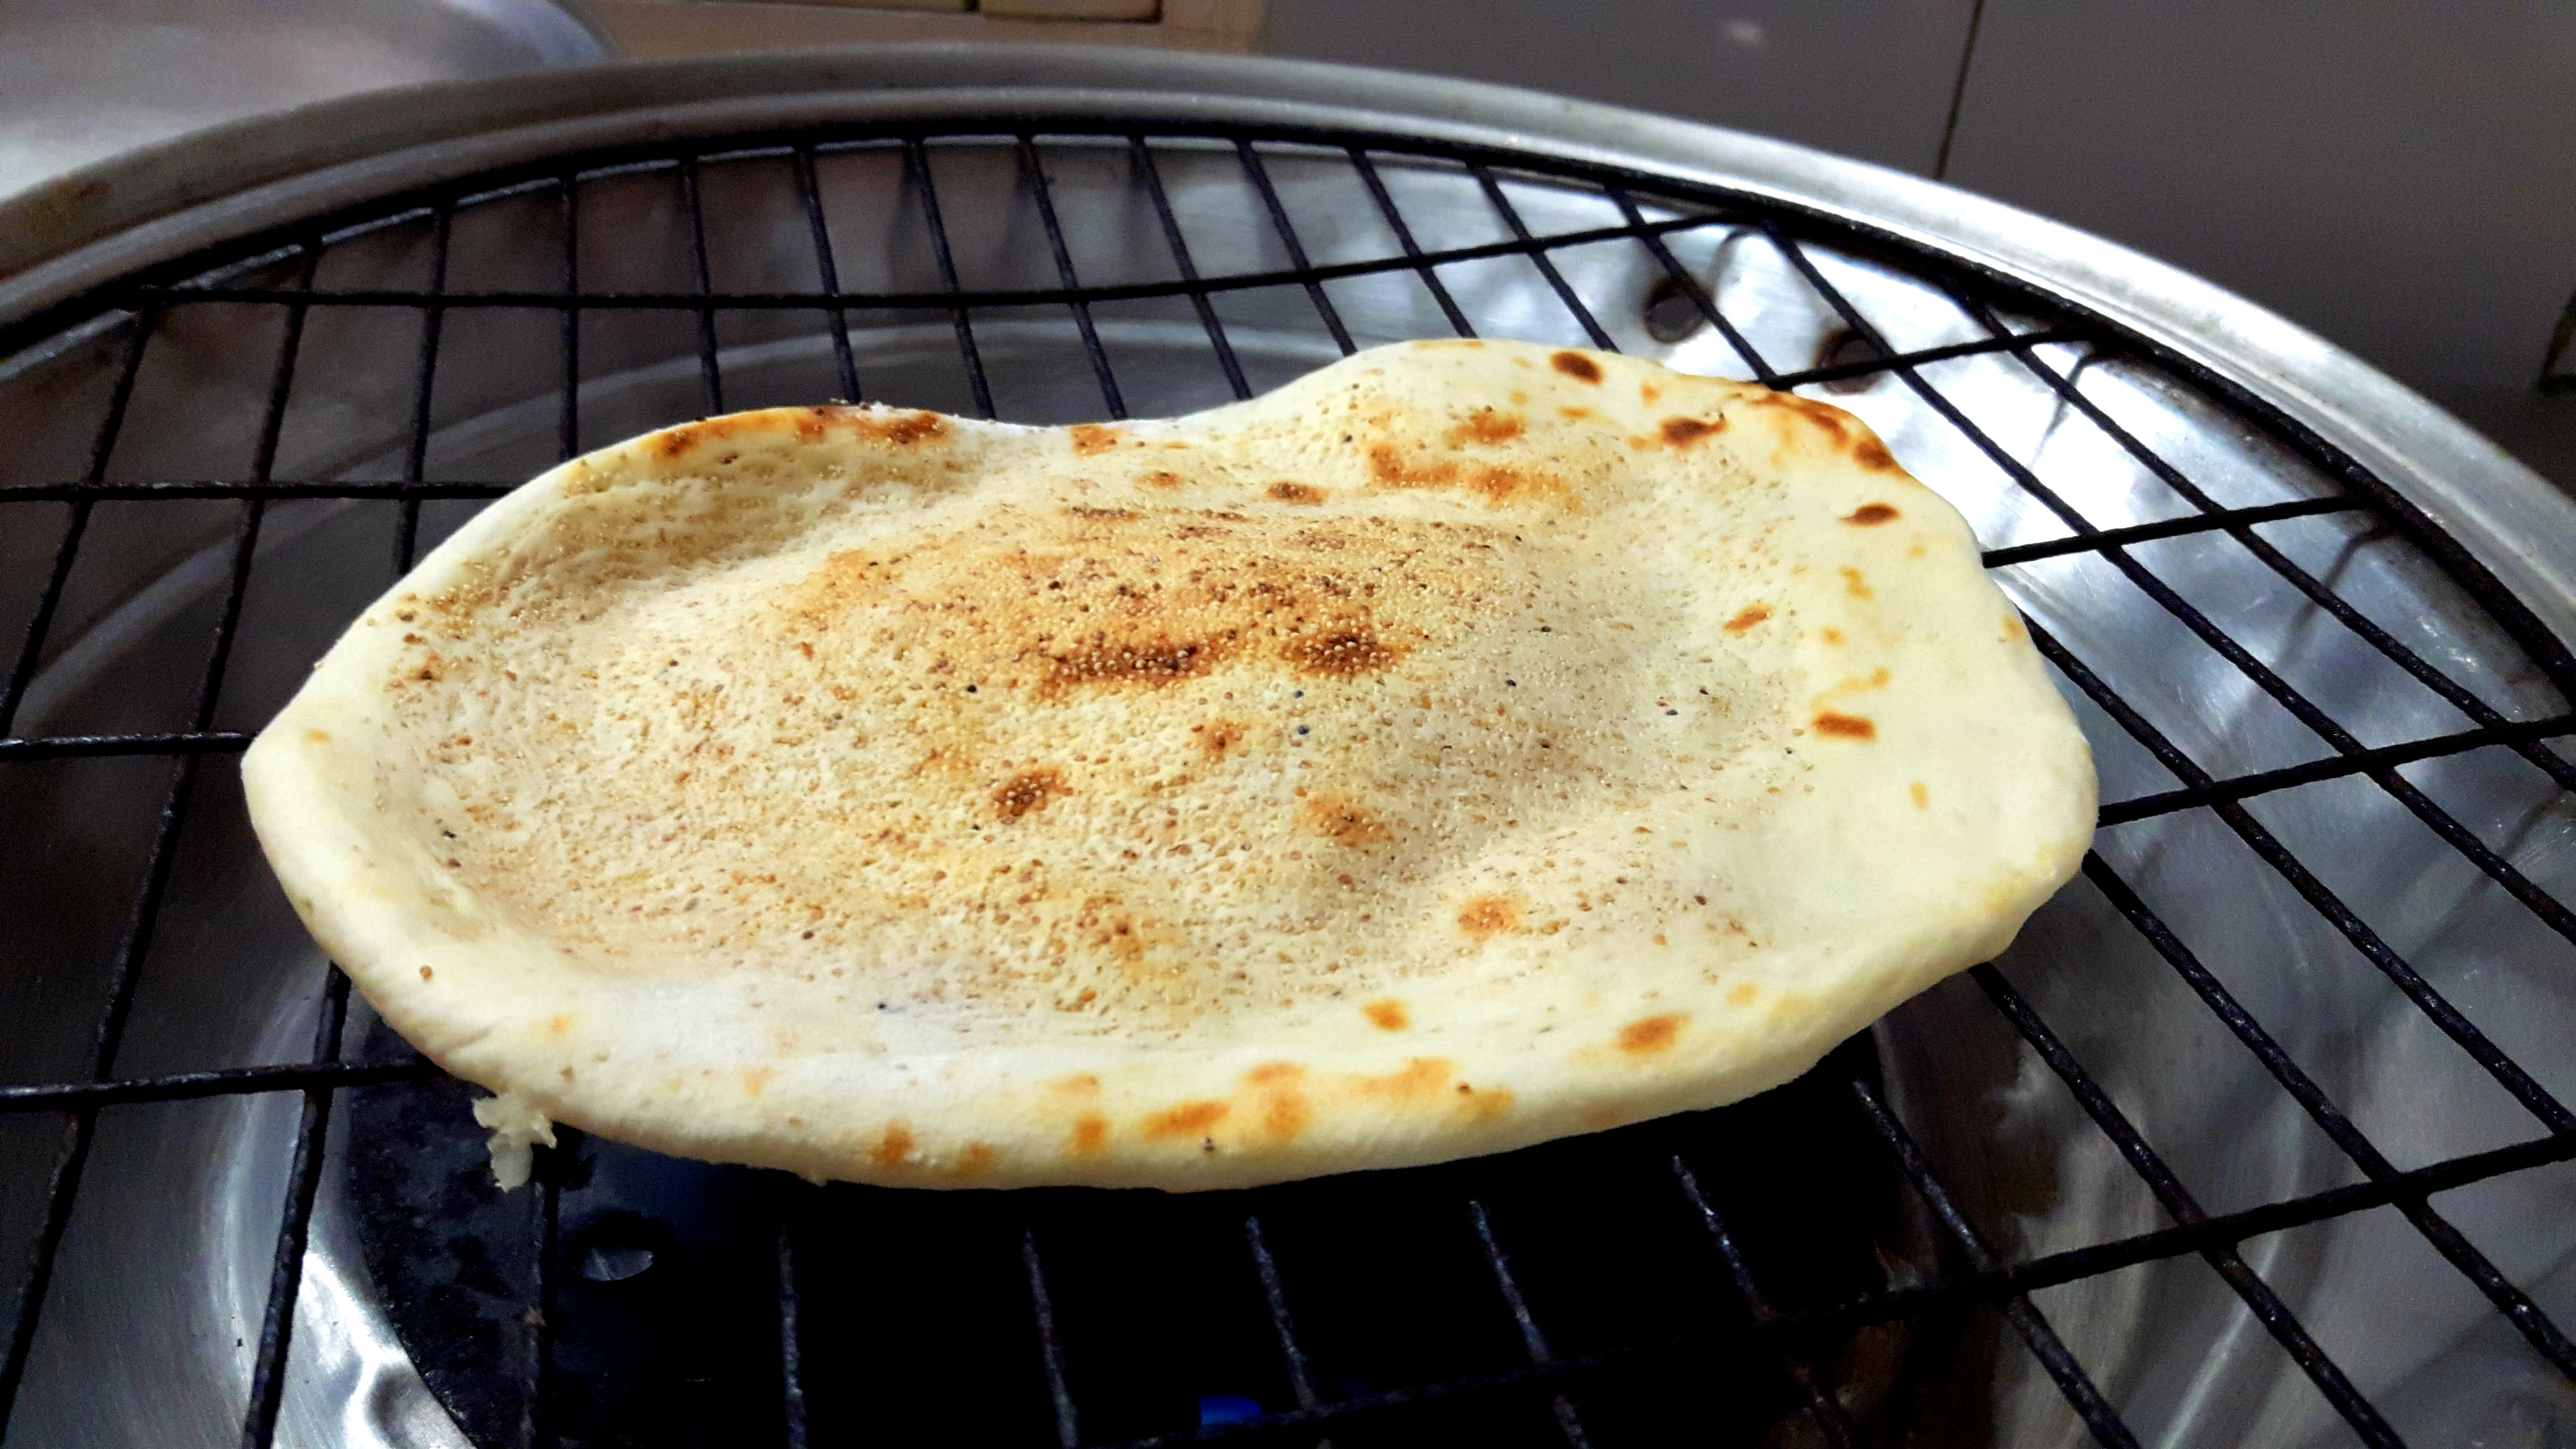 put the Naan on wire mesh